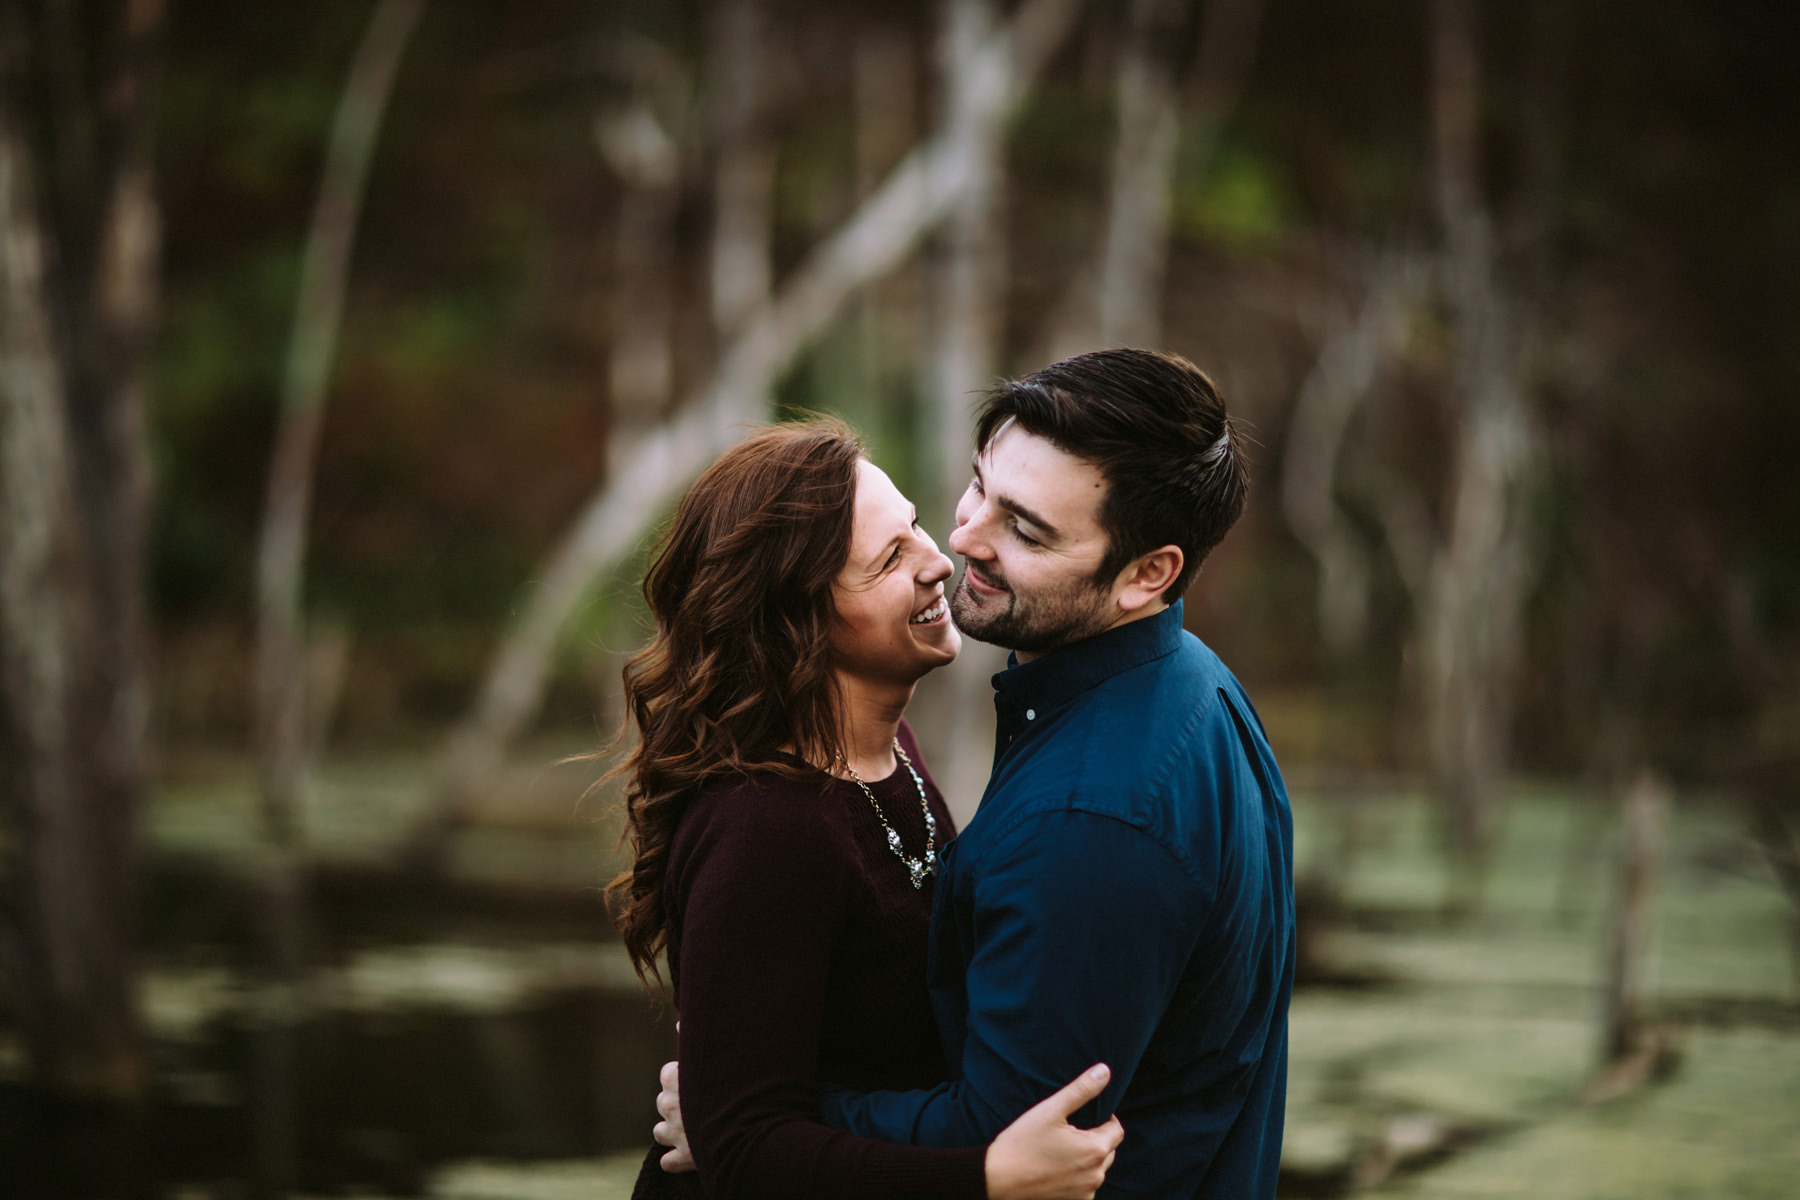 216_Black Hoof Park Engagement Session Kansas City, Missouri_Kindling Wedding Photography.JPG